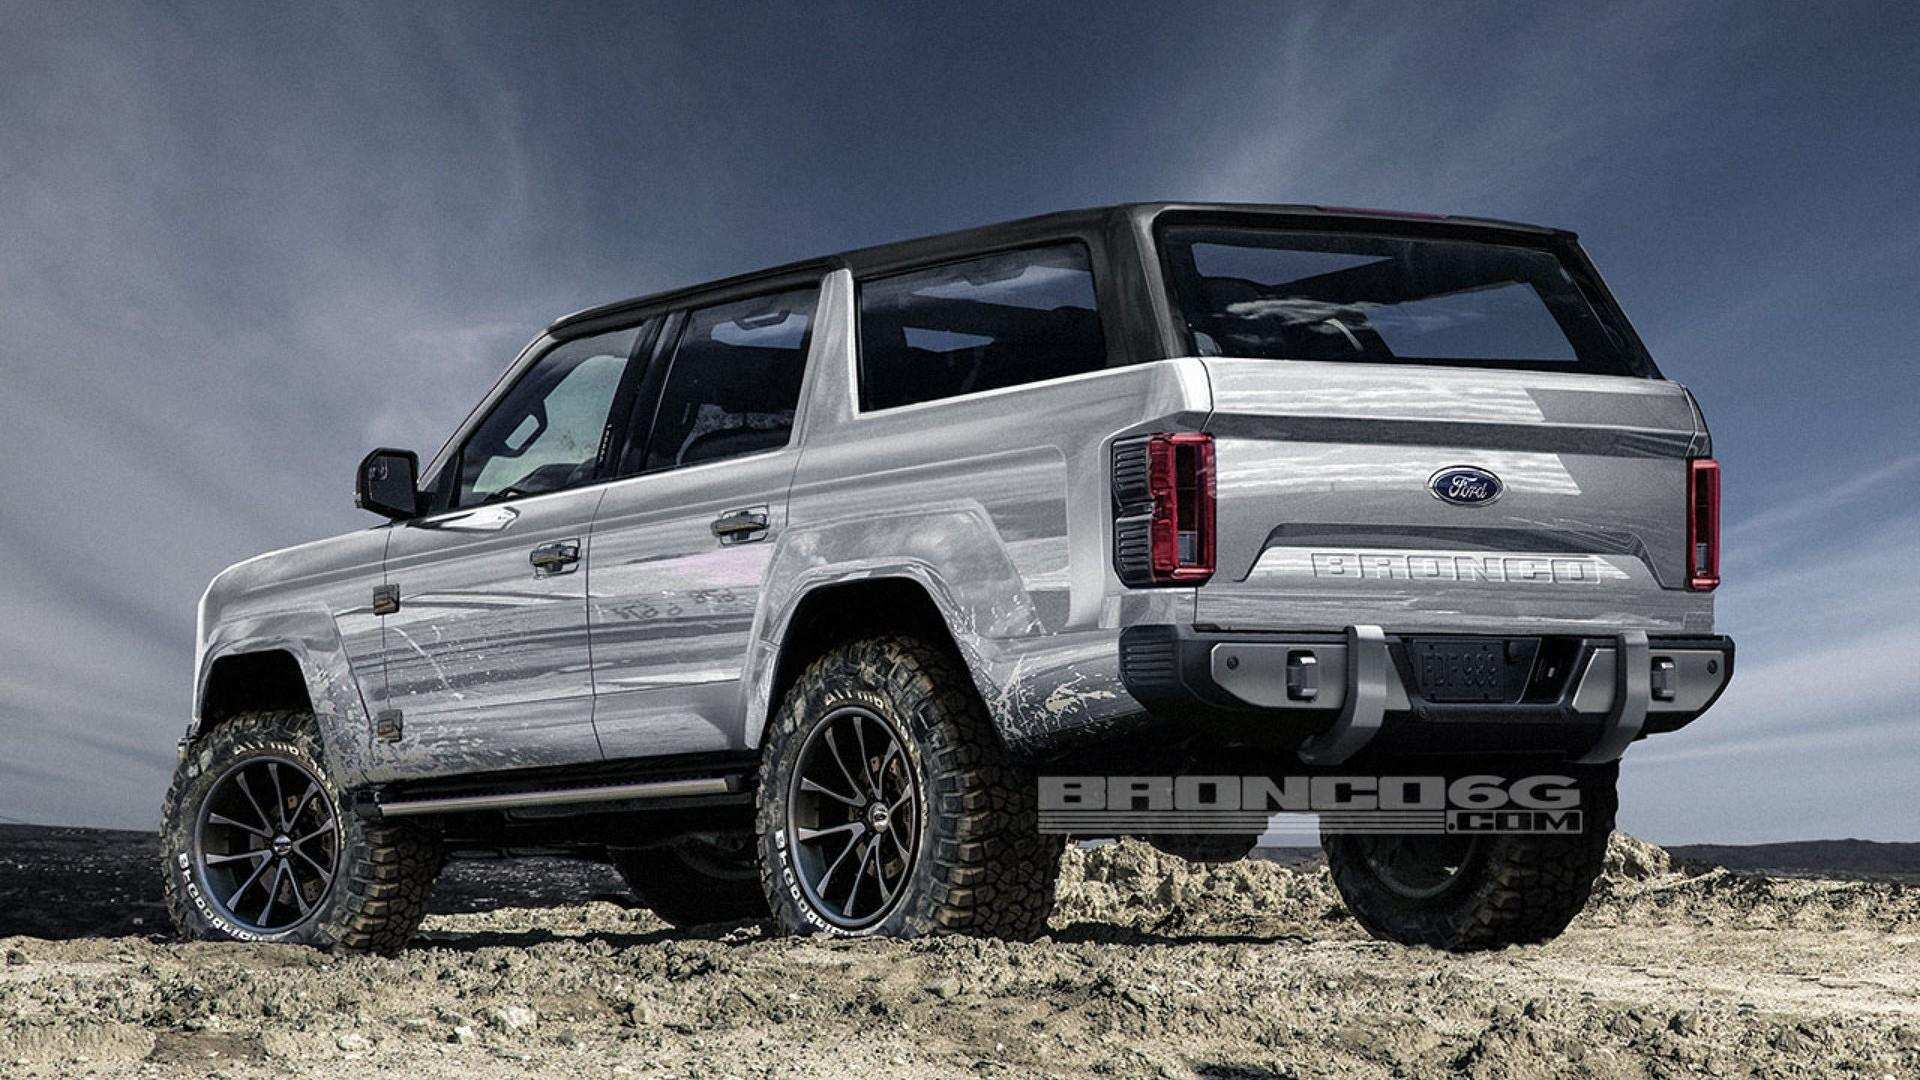 38 All New Ford Bronco 2020 Release Date New Model And Performance